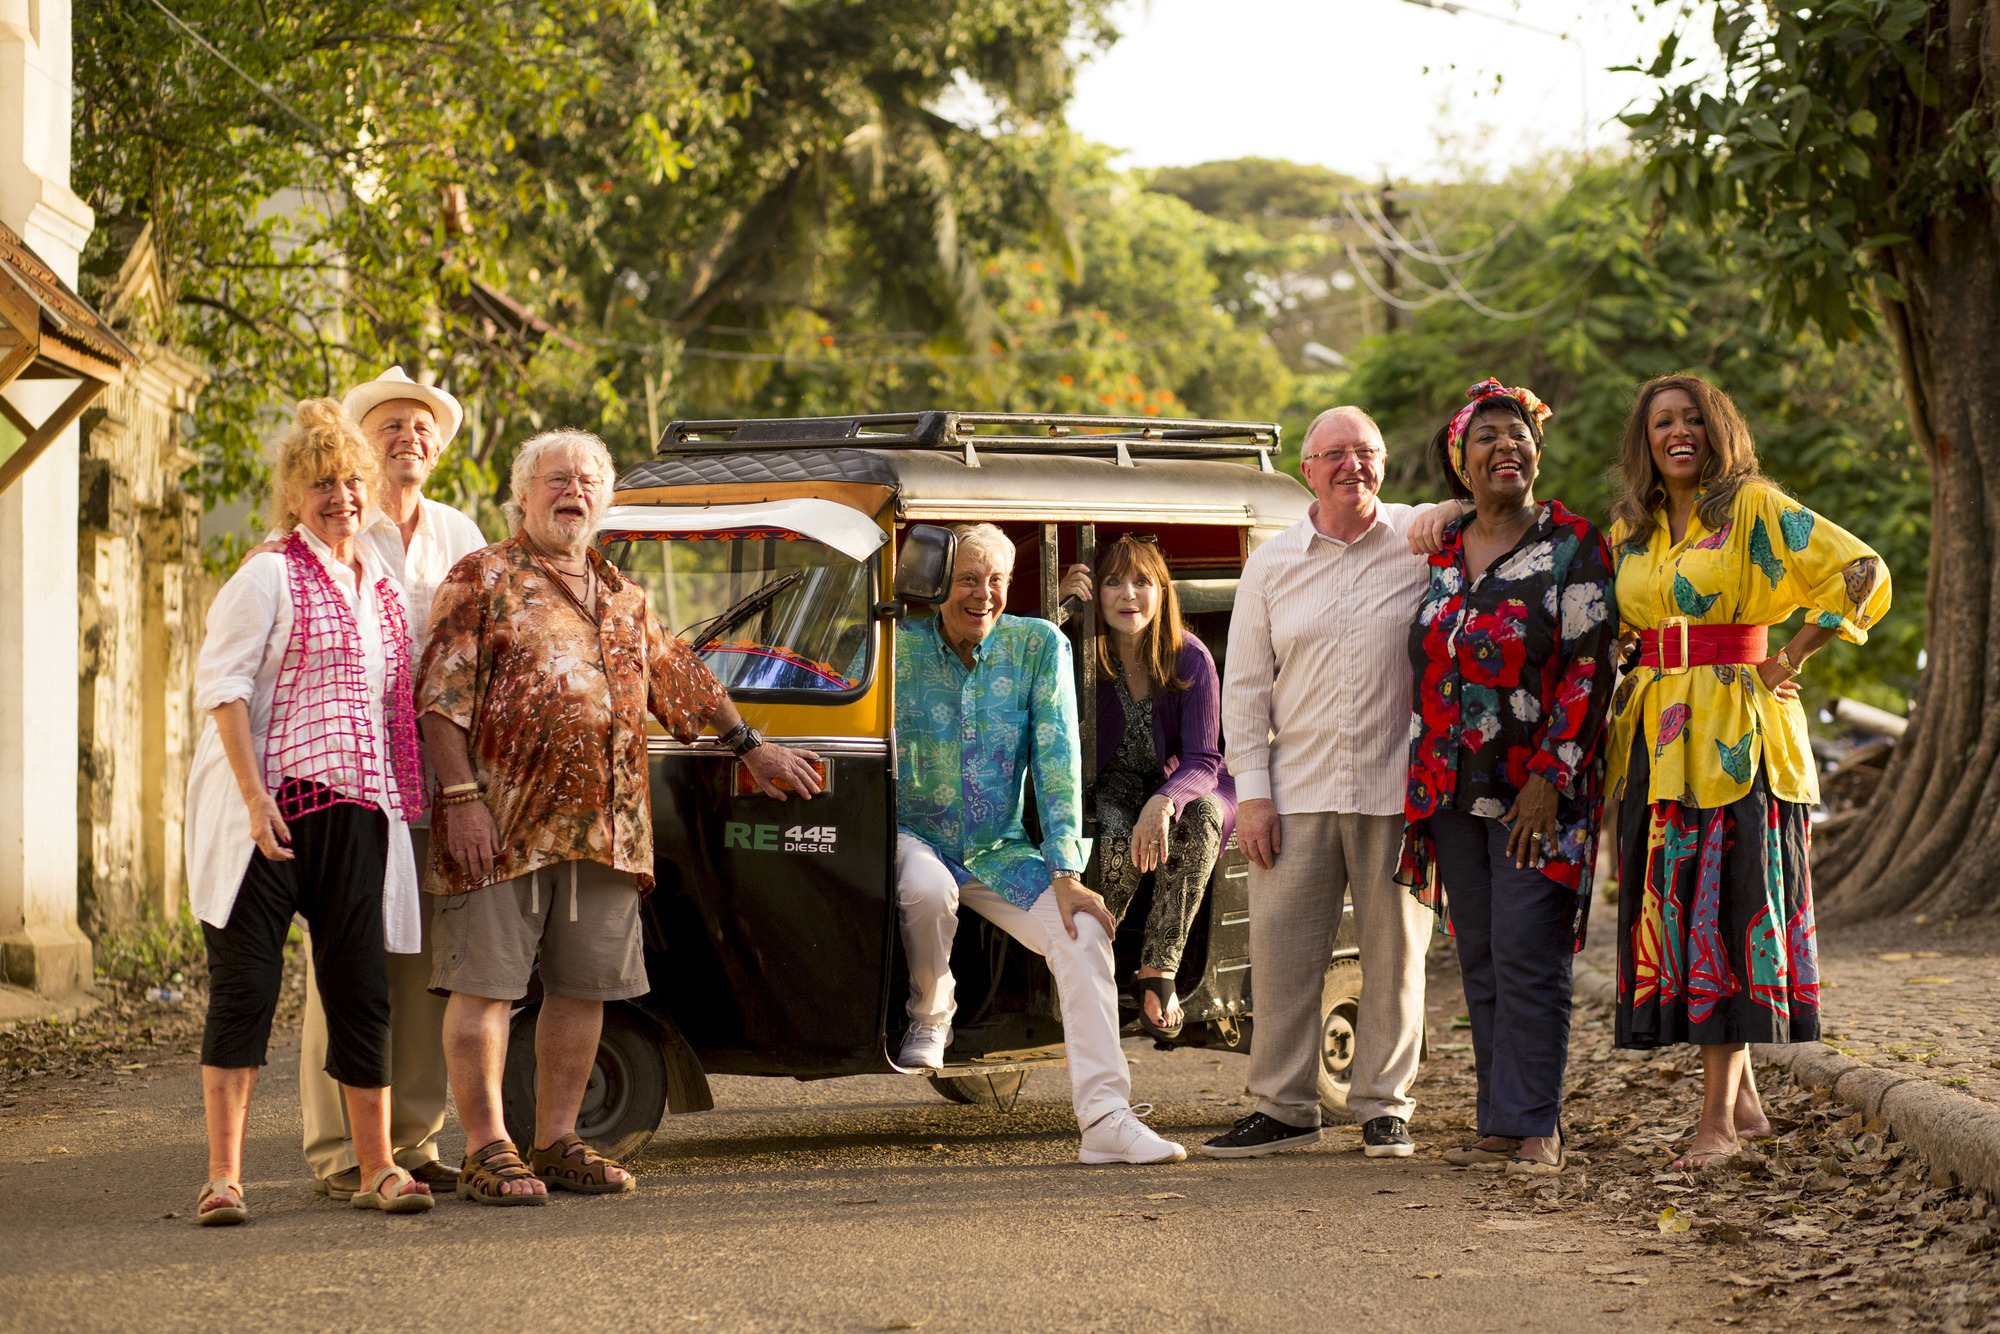 Bill, third from left, is starring in The Real Marigold Hotel (Picture: Channel 4)